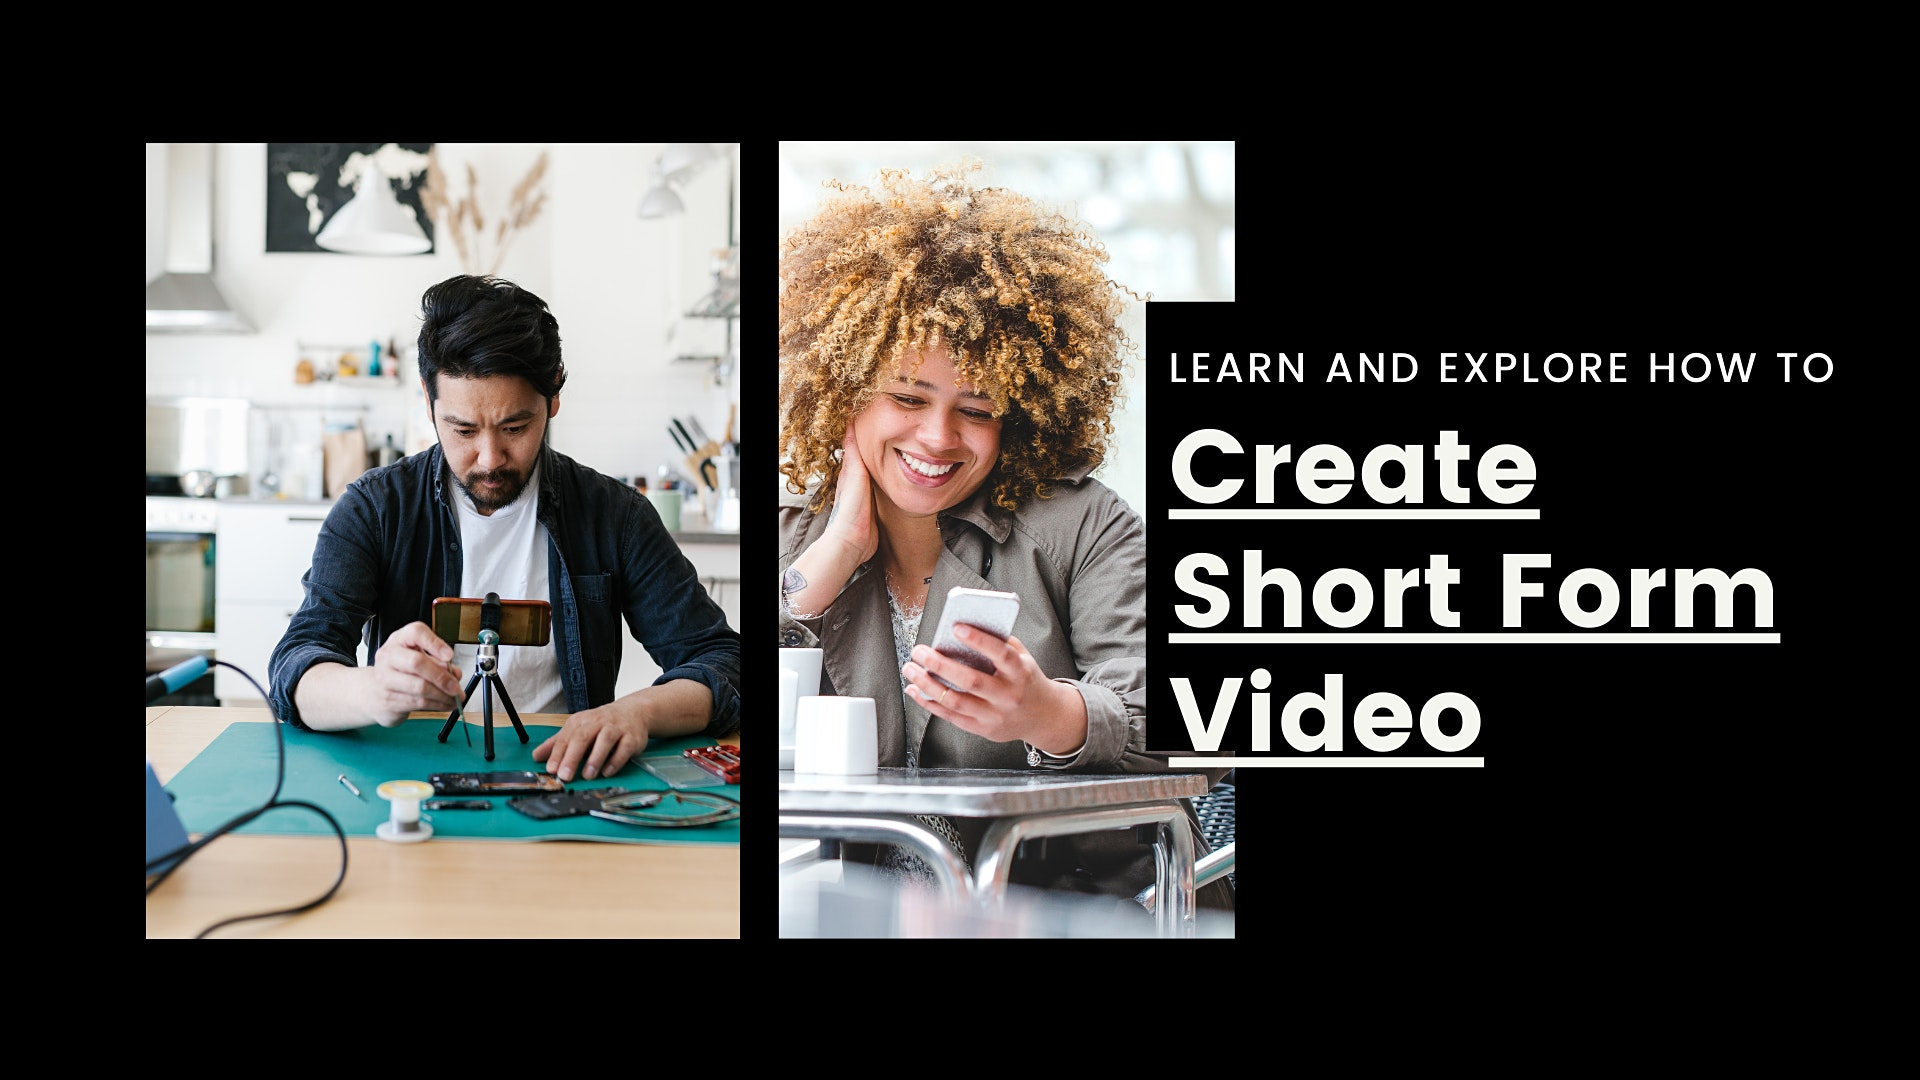 Creating Short Form Video to Promote Your Business